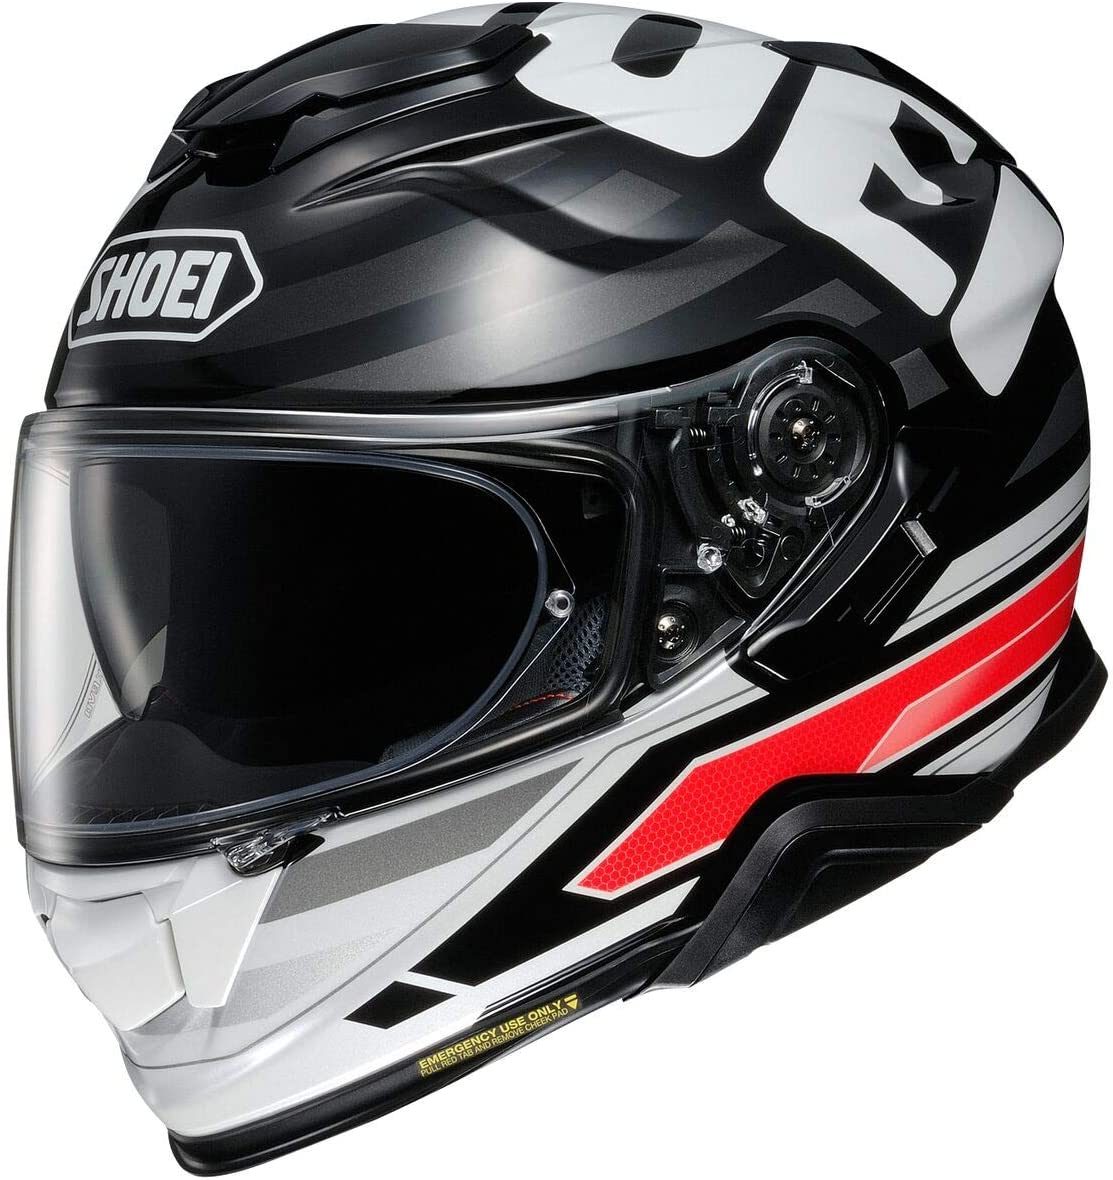 Shoei Black White Safety and trust Red Sz M Face GT-Air Beauty products He Insignia II Full